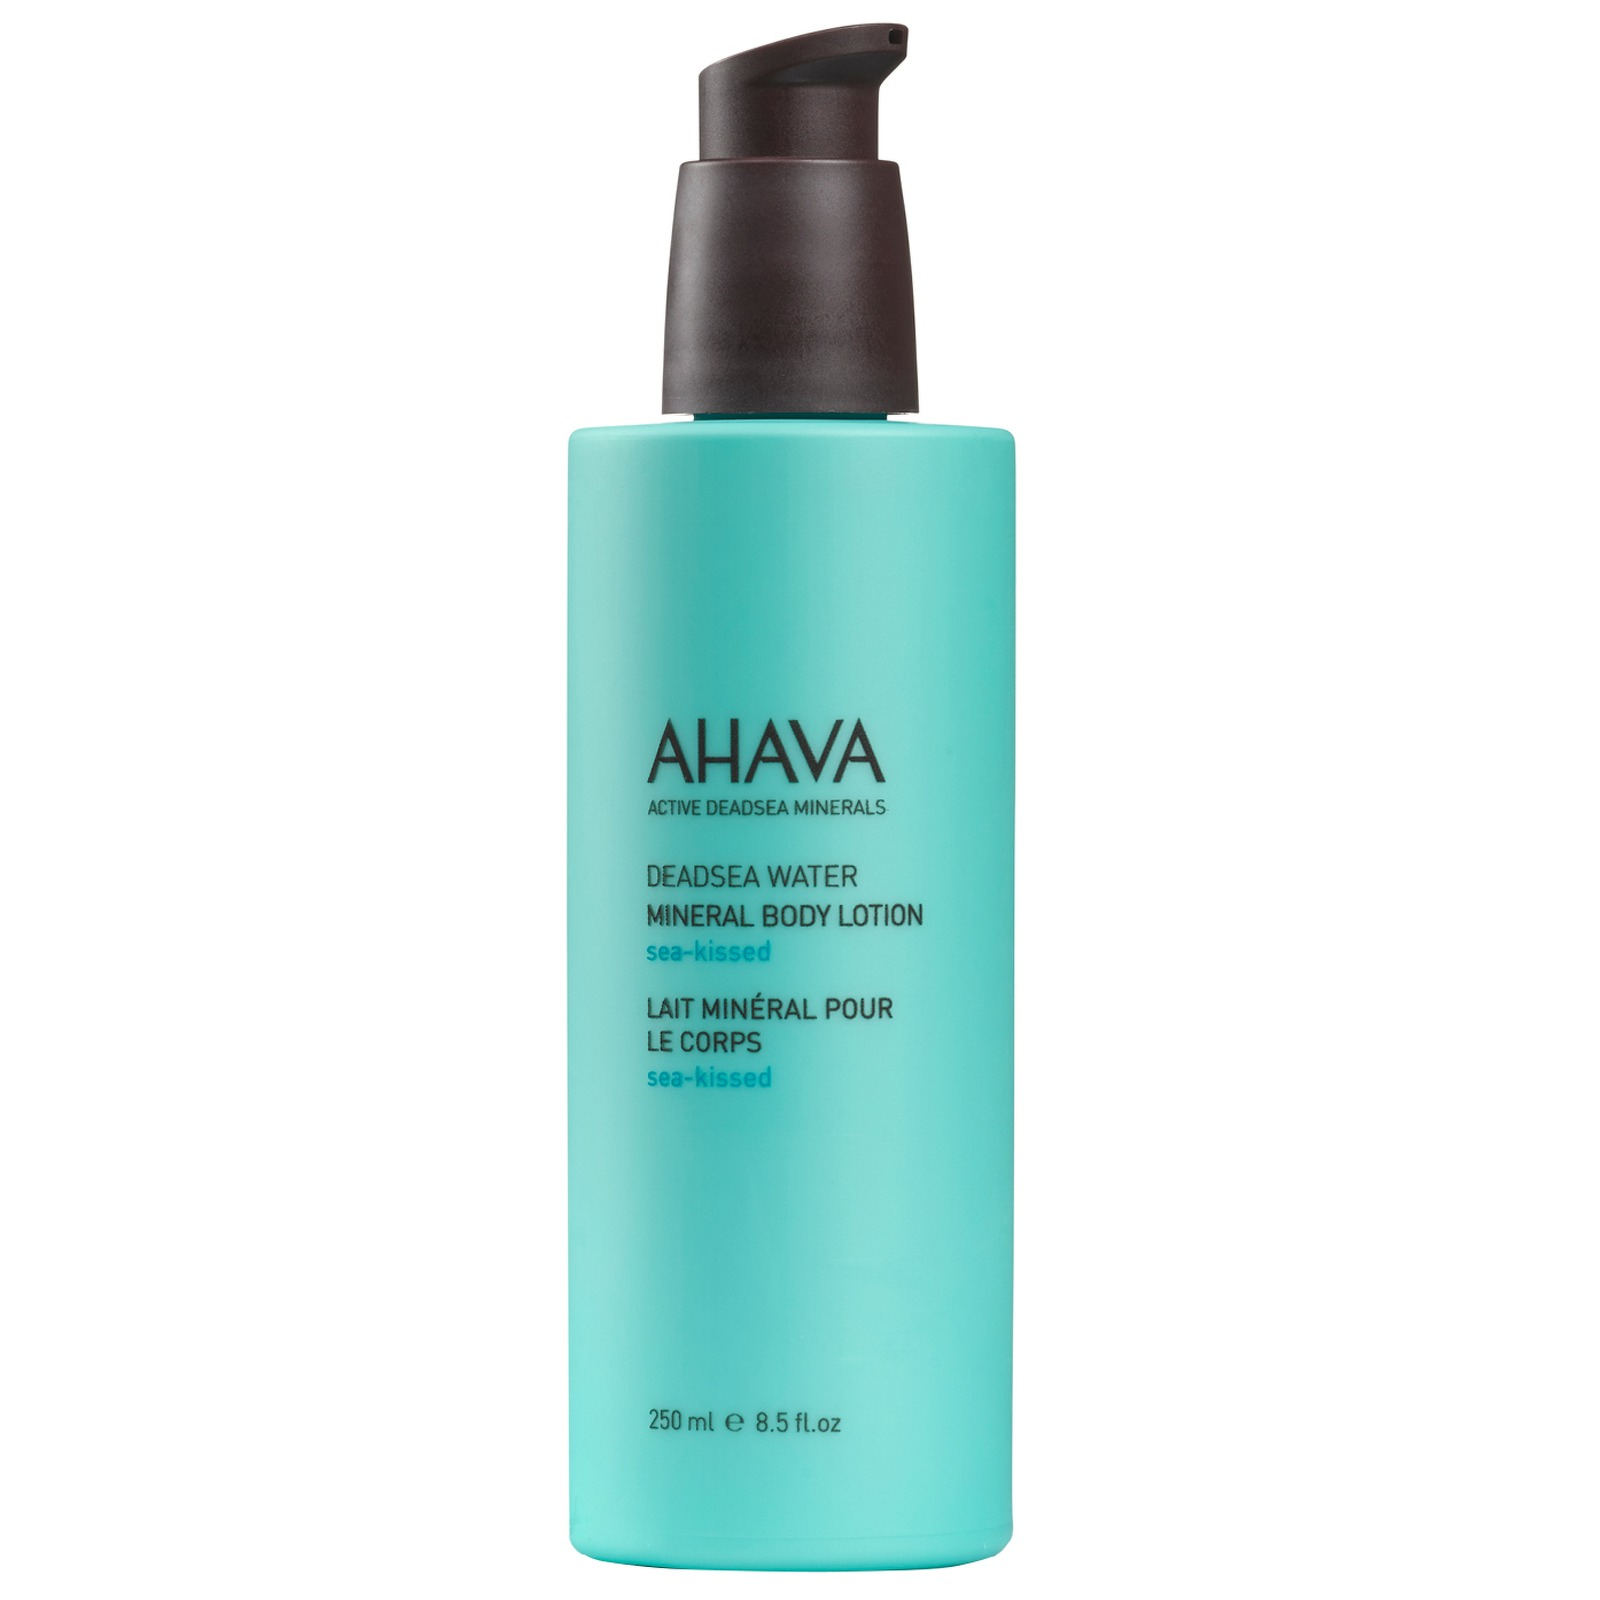 Ahava Water Hydrate Deadsea Water Mineral Body Lotion - Sea-Kissed 250ml